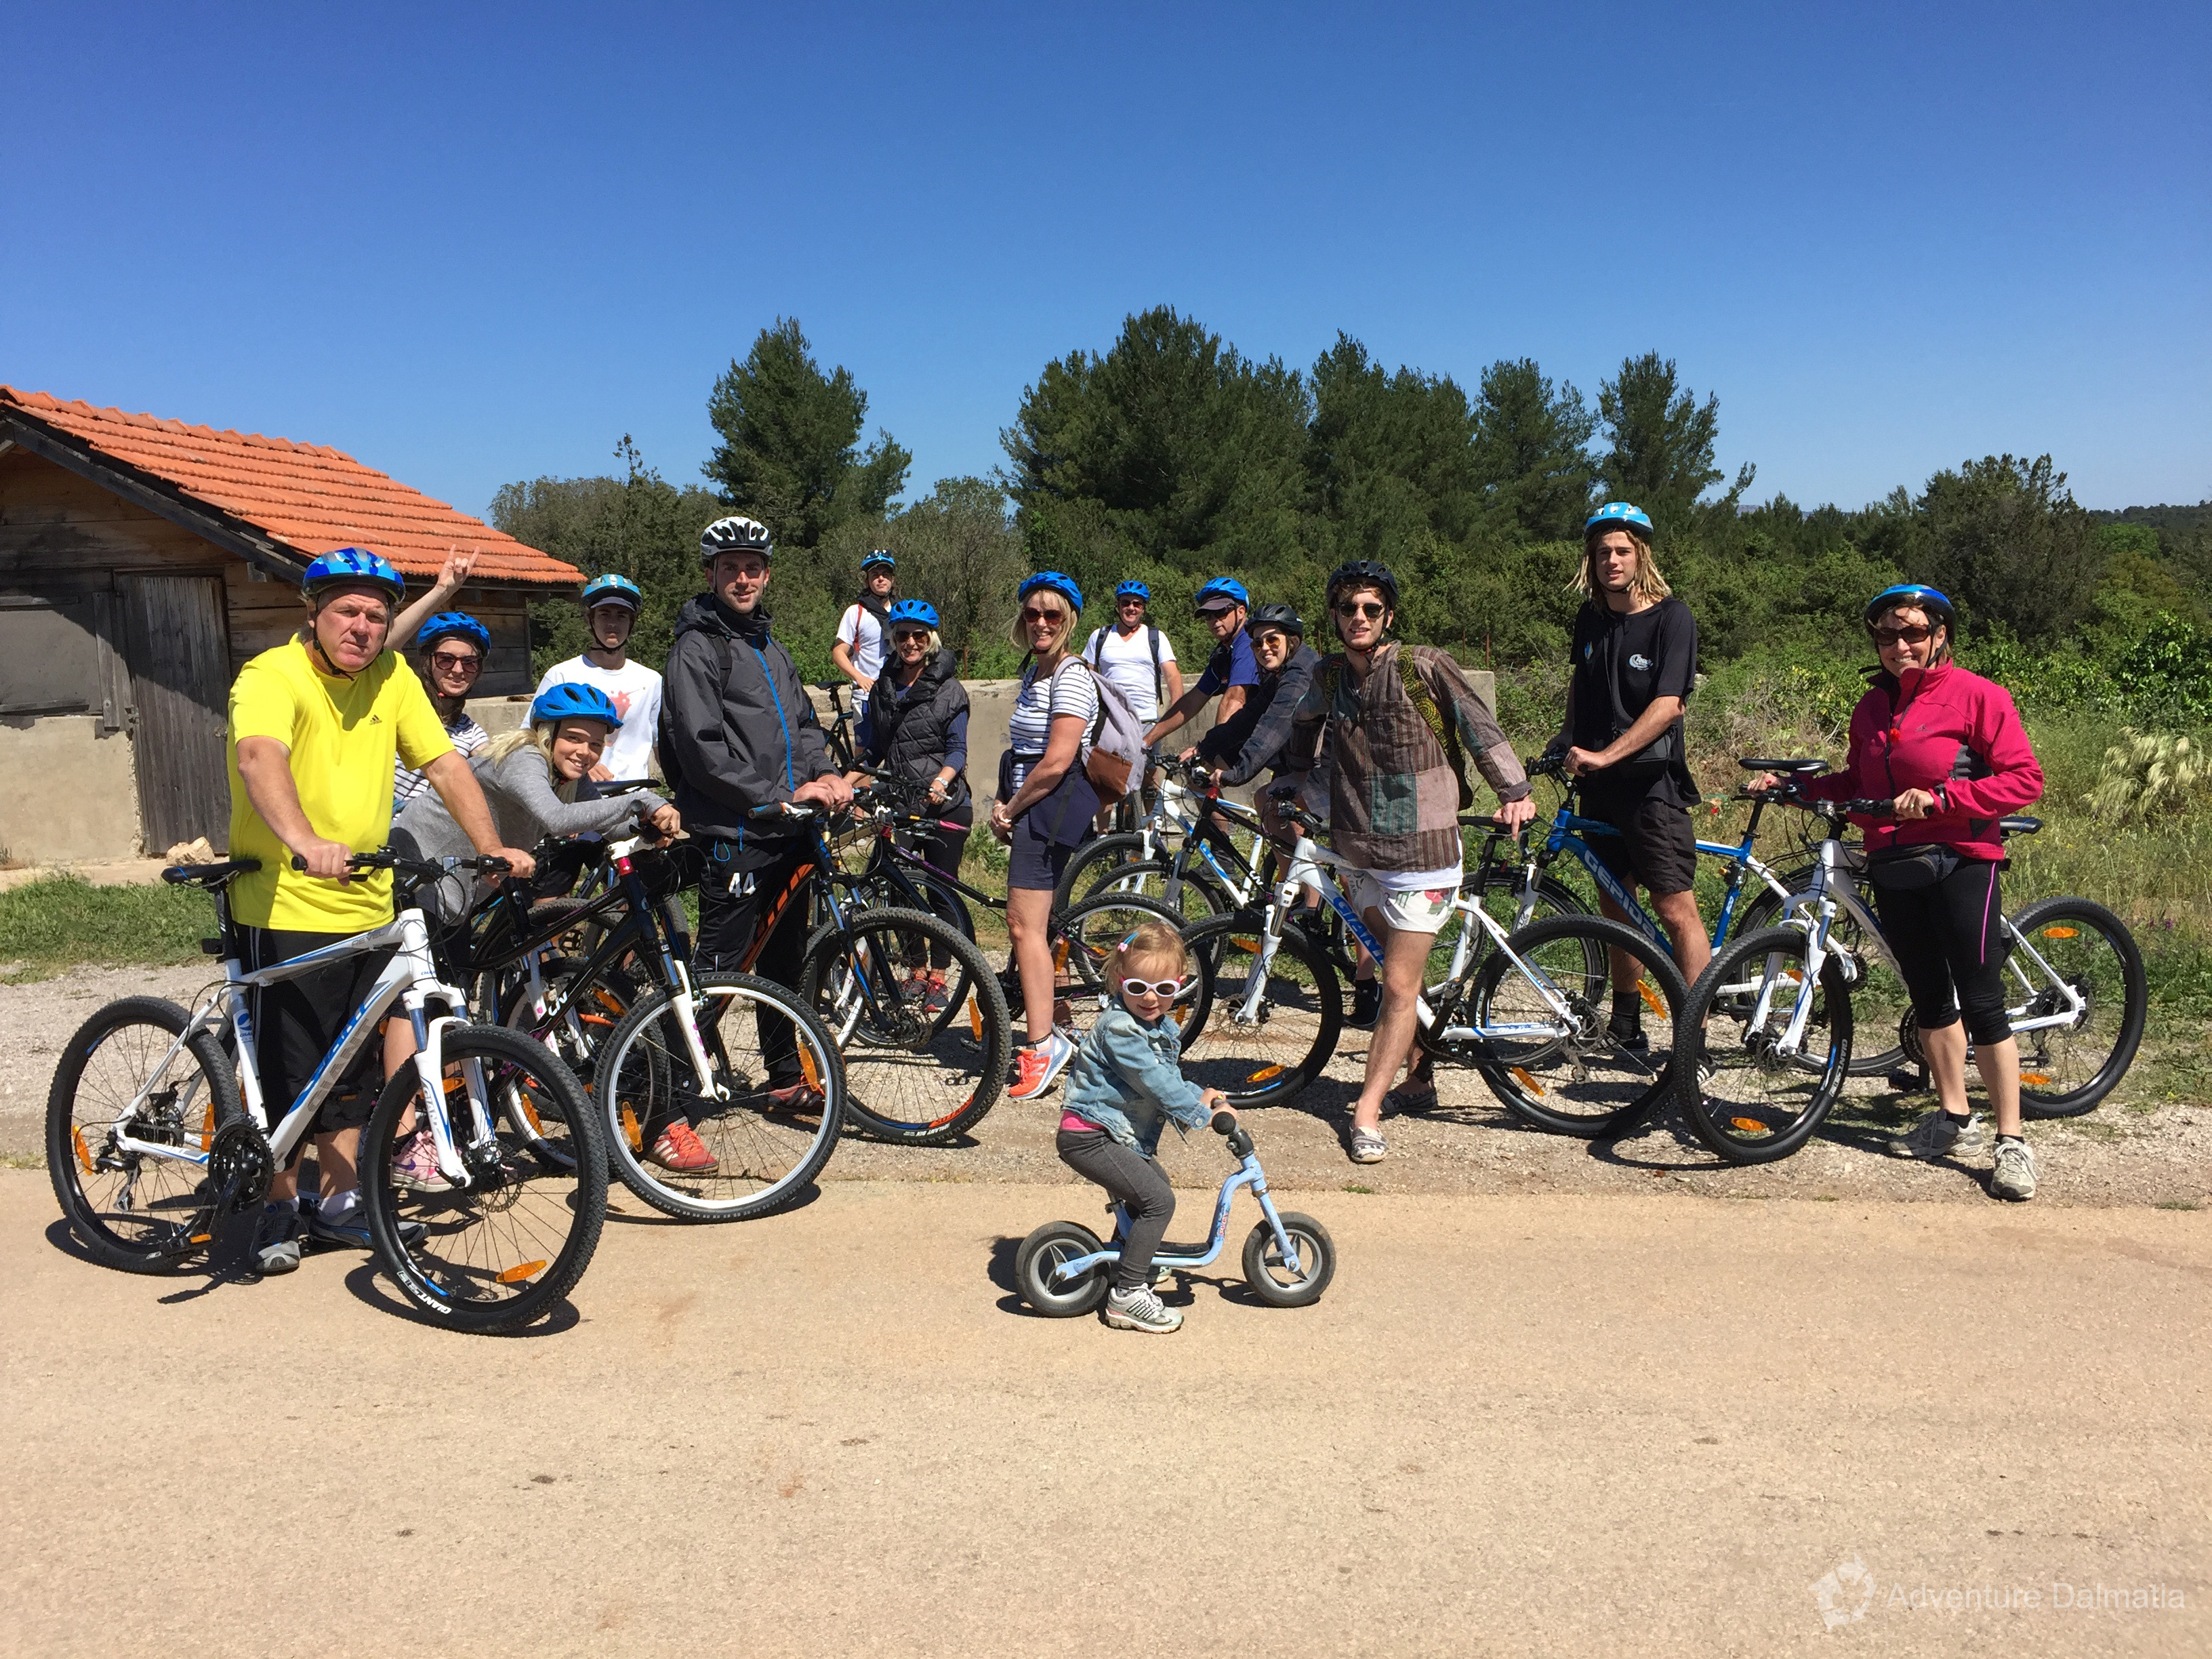 Hvar biking tour